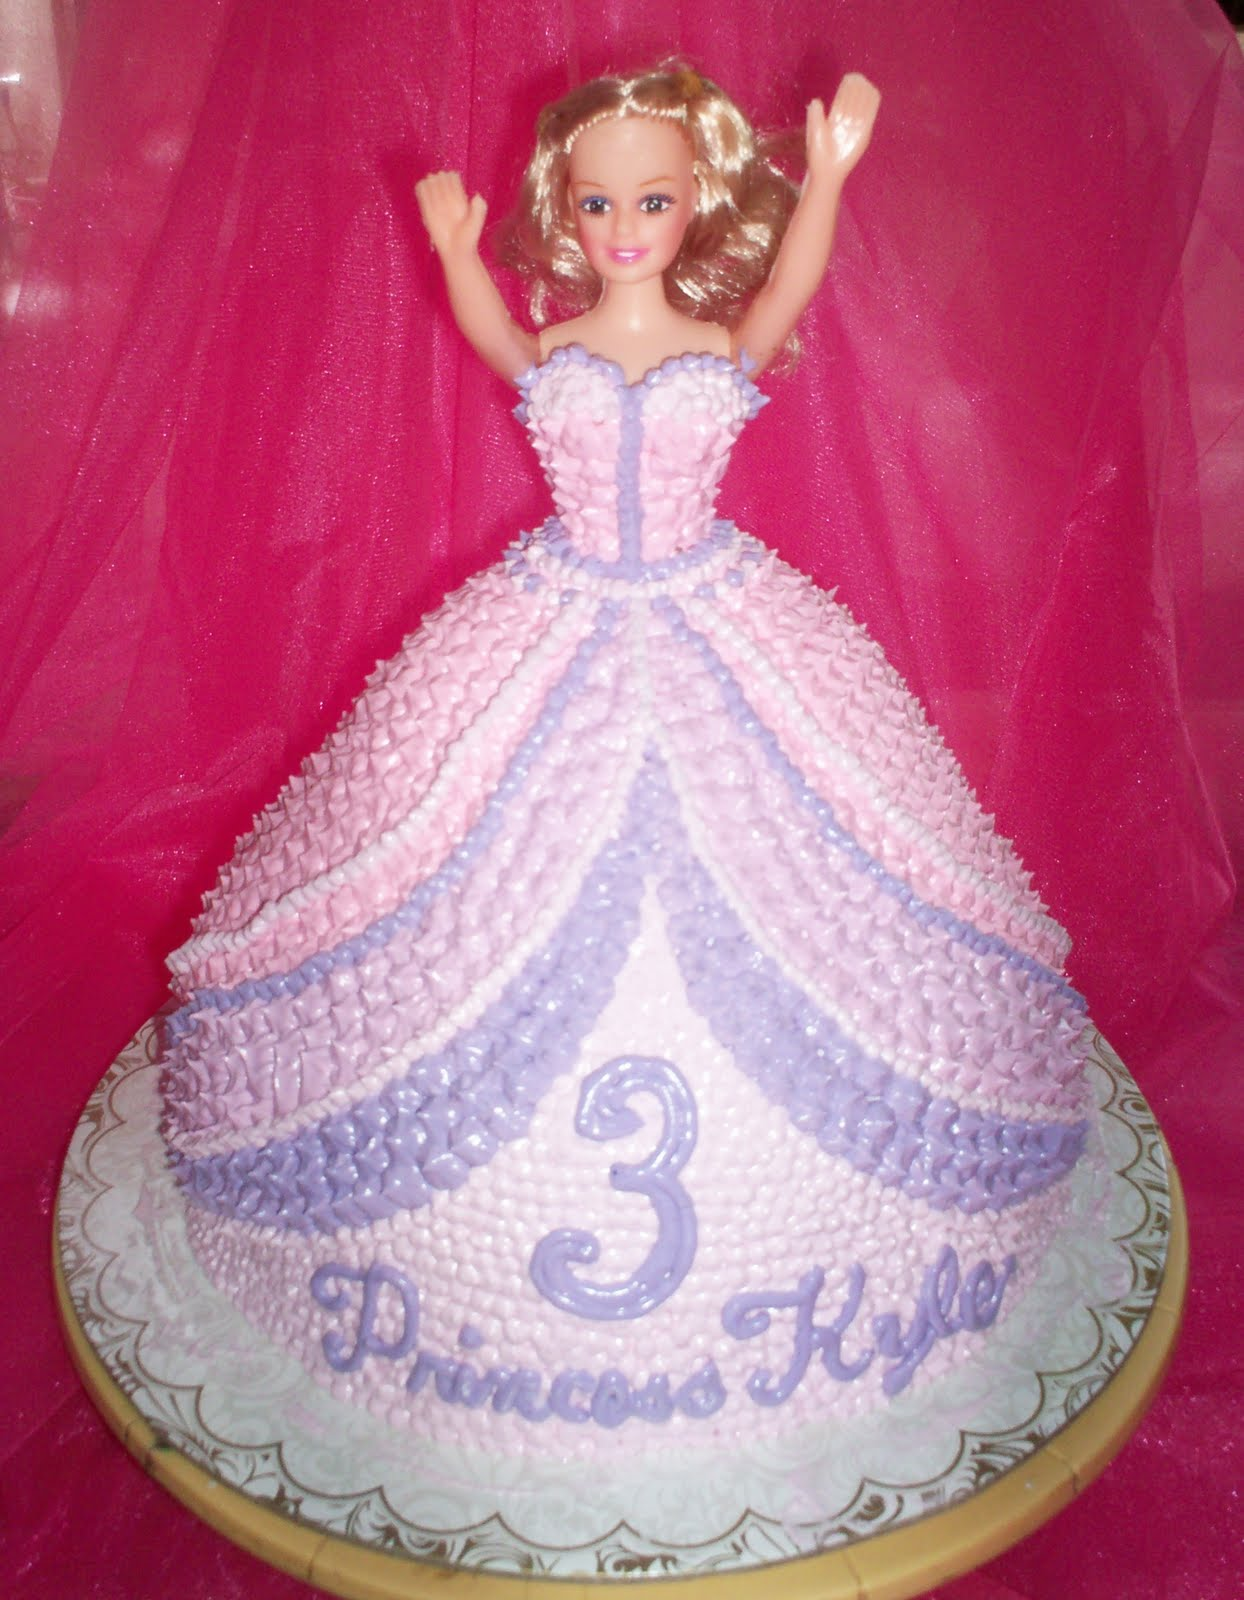 Cake Images Barbie : PaupiCakes: Barbie Cake